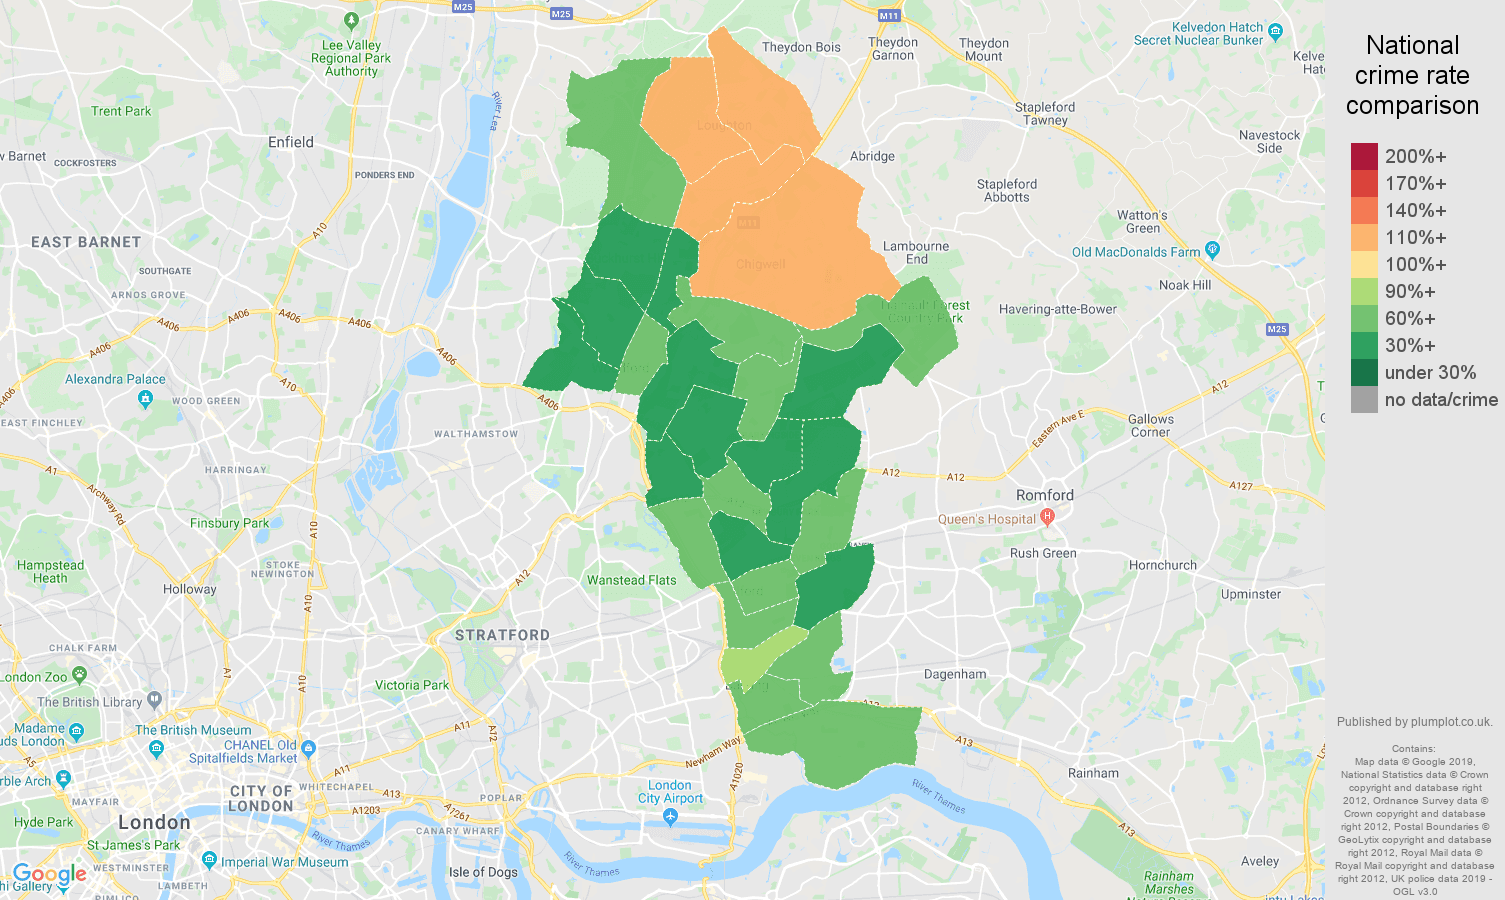 Ilford other crime rate comparison map